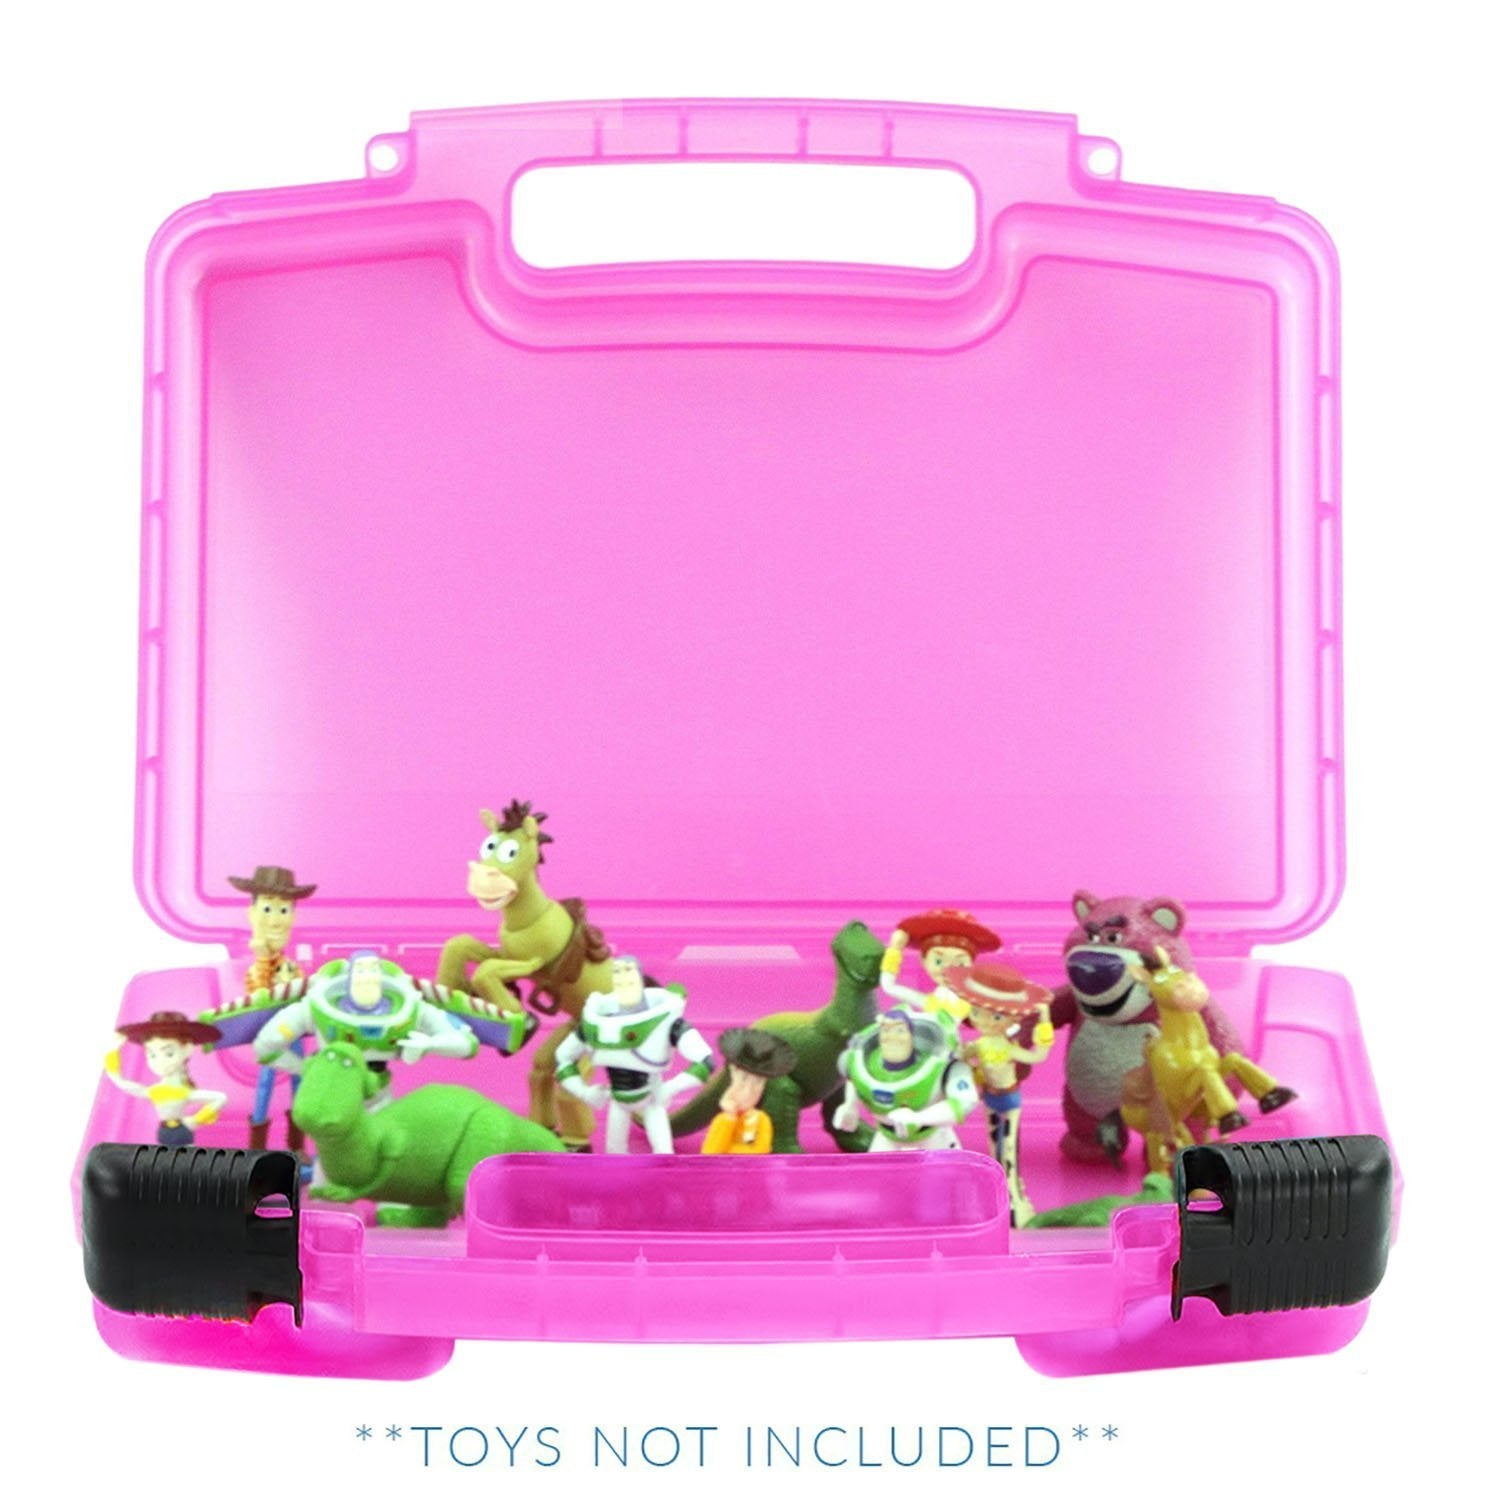 Toy Story Case, Toy Storage Carrying Box. Figures Playset Organizer. Accessories for Kids by LMB